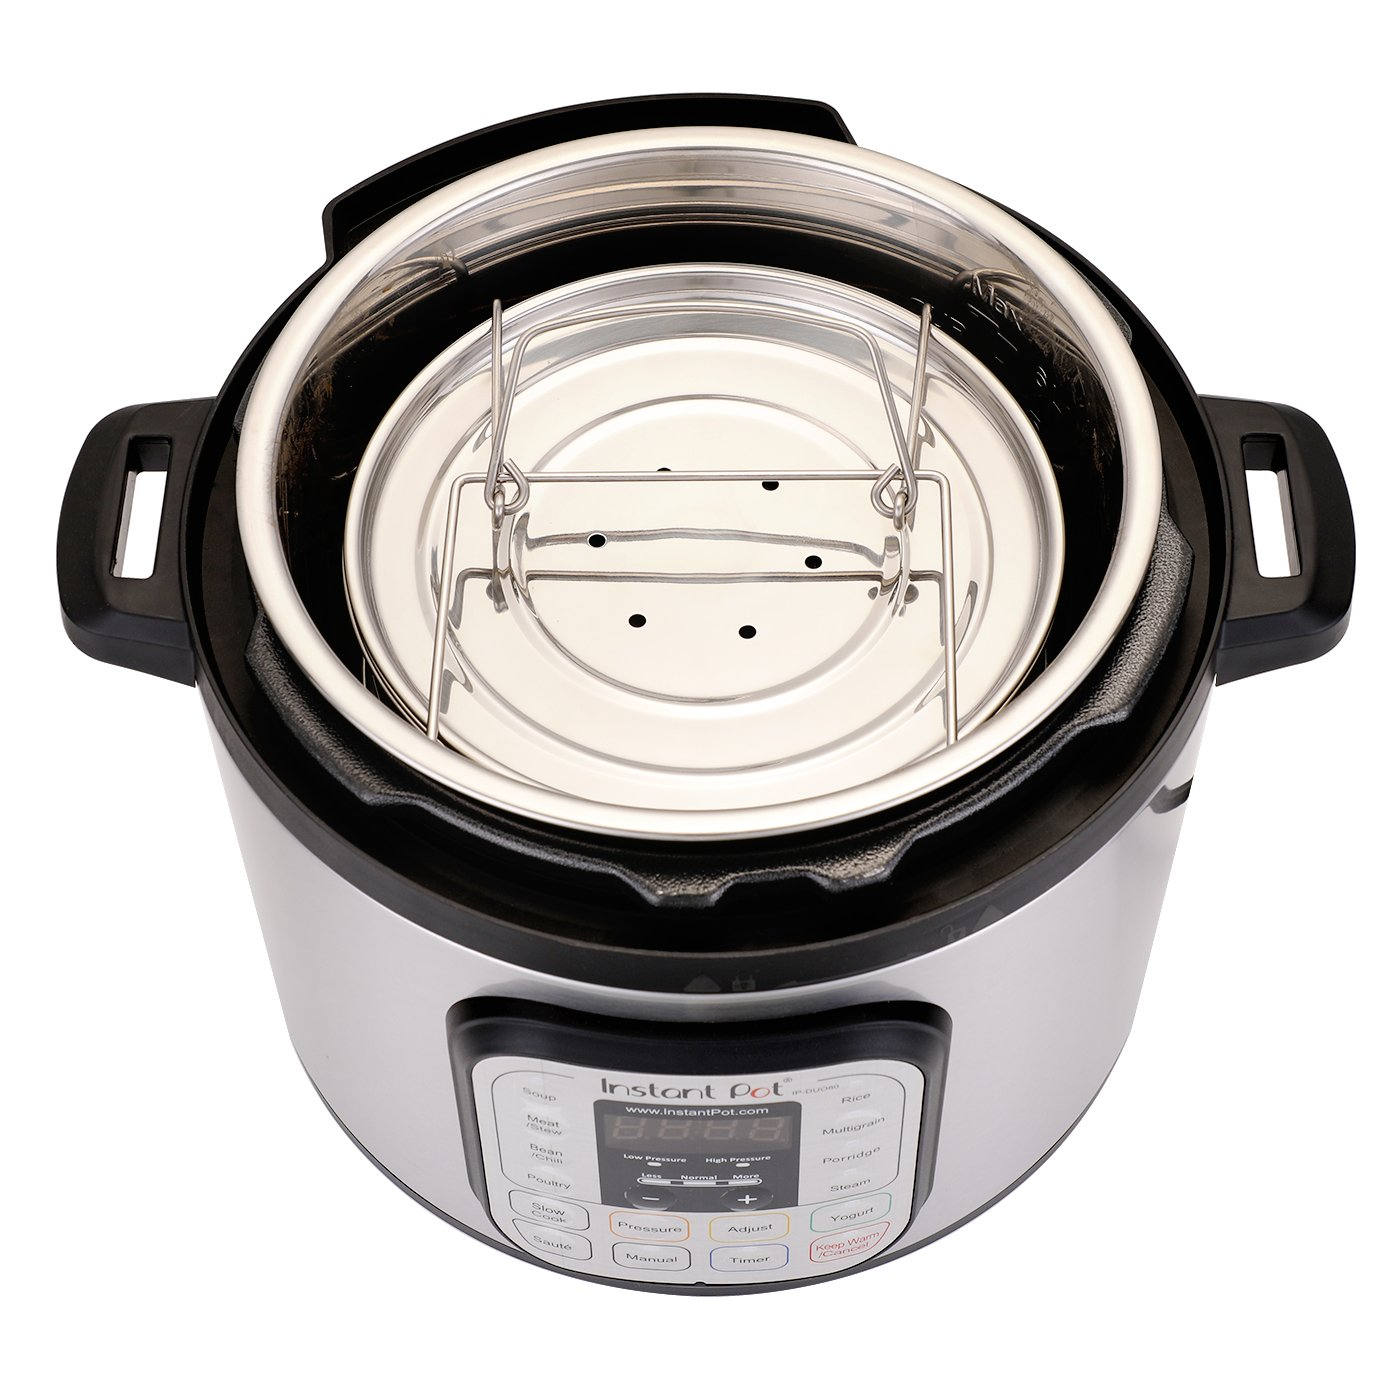 Aozita Stackable Steamer Insert Pans with Sling for Instant Pot Accessories 8 Quart - Food Steamer for Pressure Cooker Pot in Pot Cooking, Upgrade Interchangeable Lids Included by Aozita (Image #4)